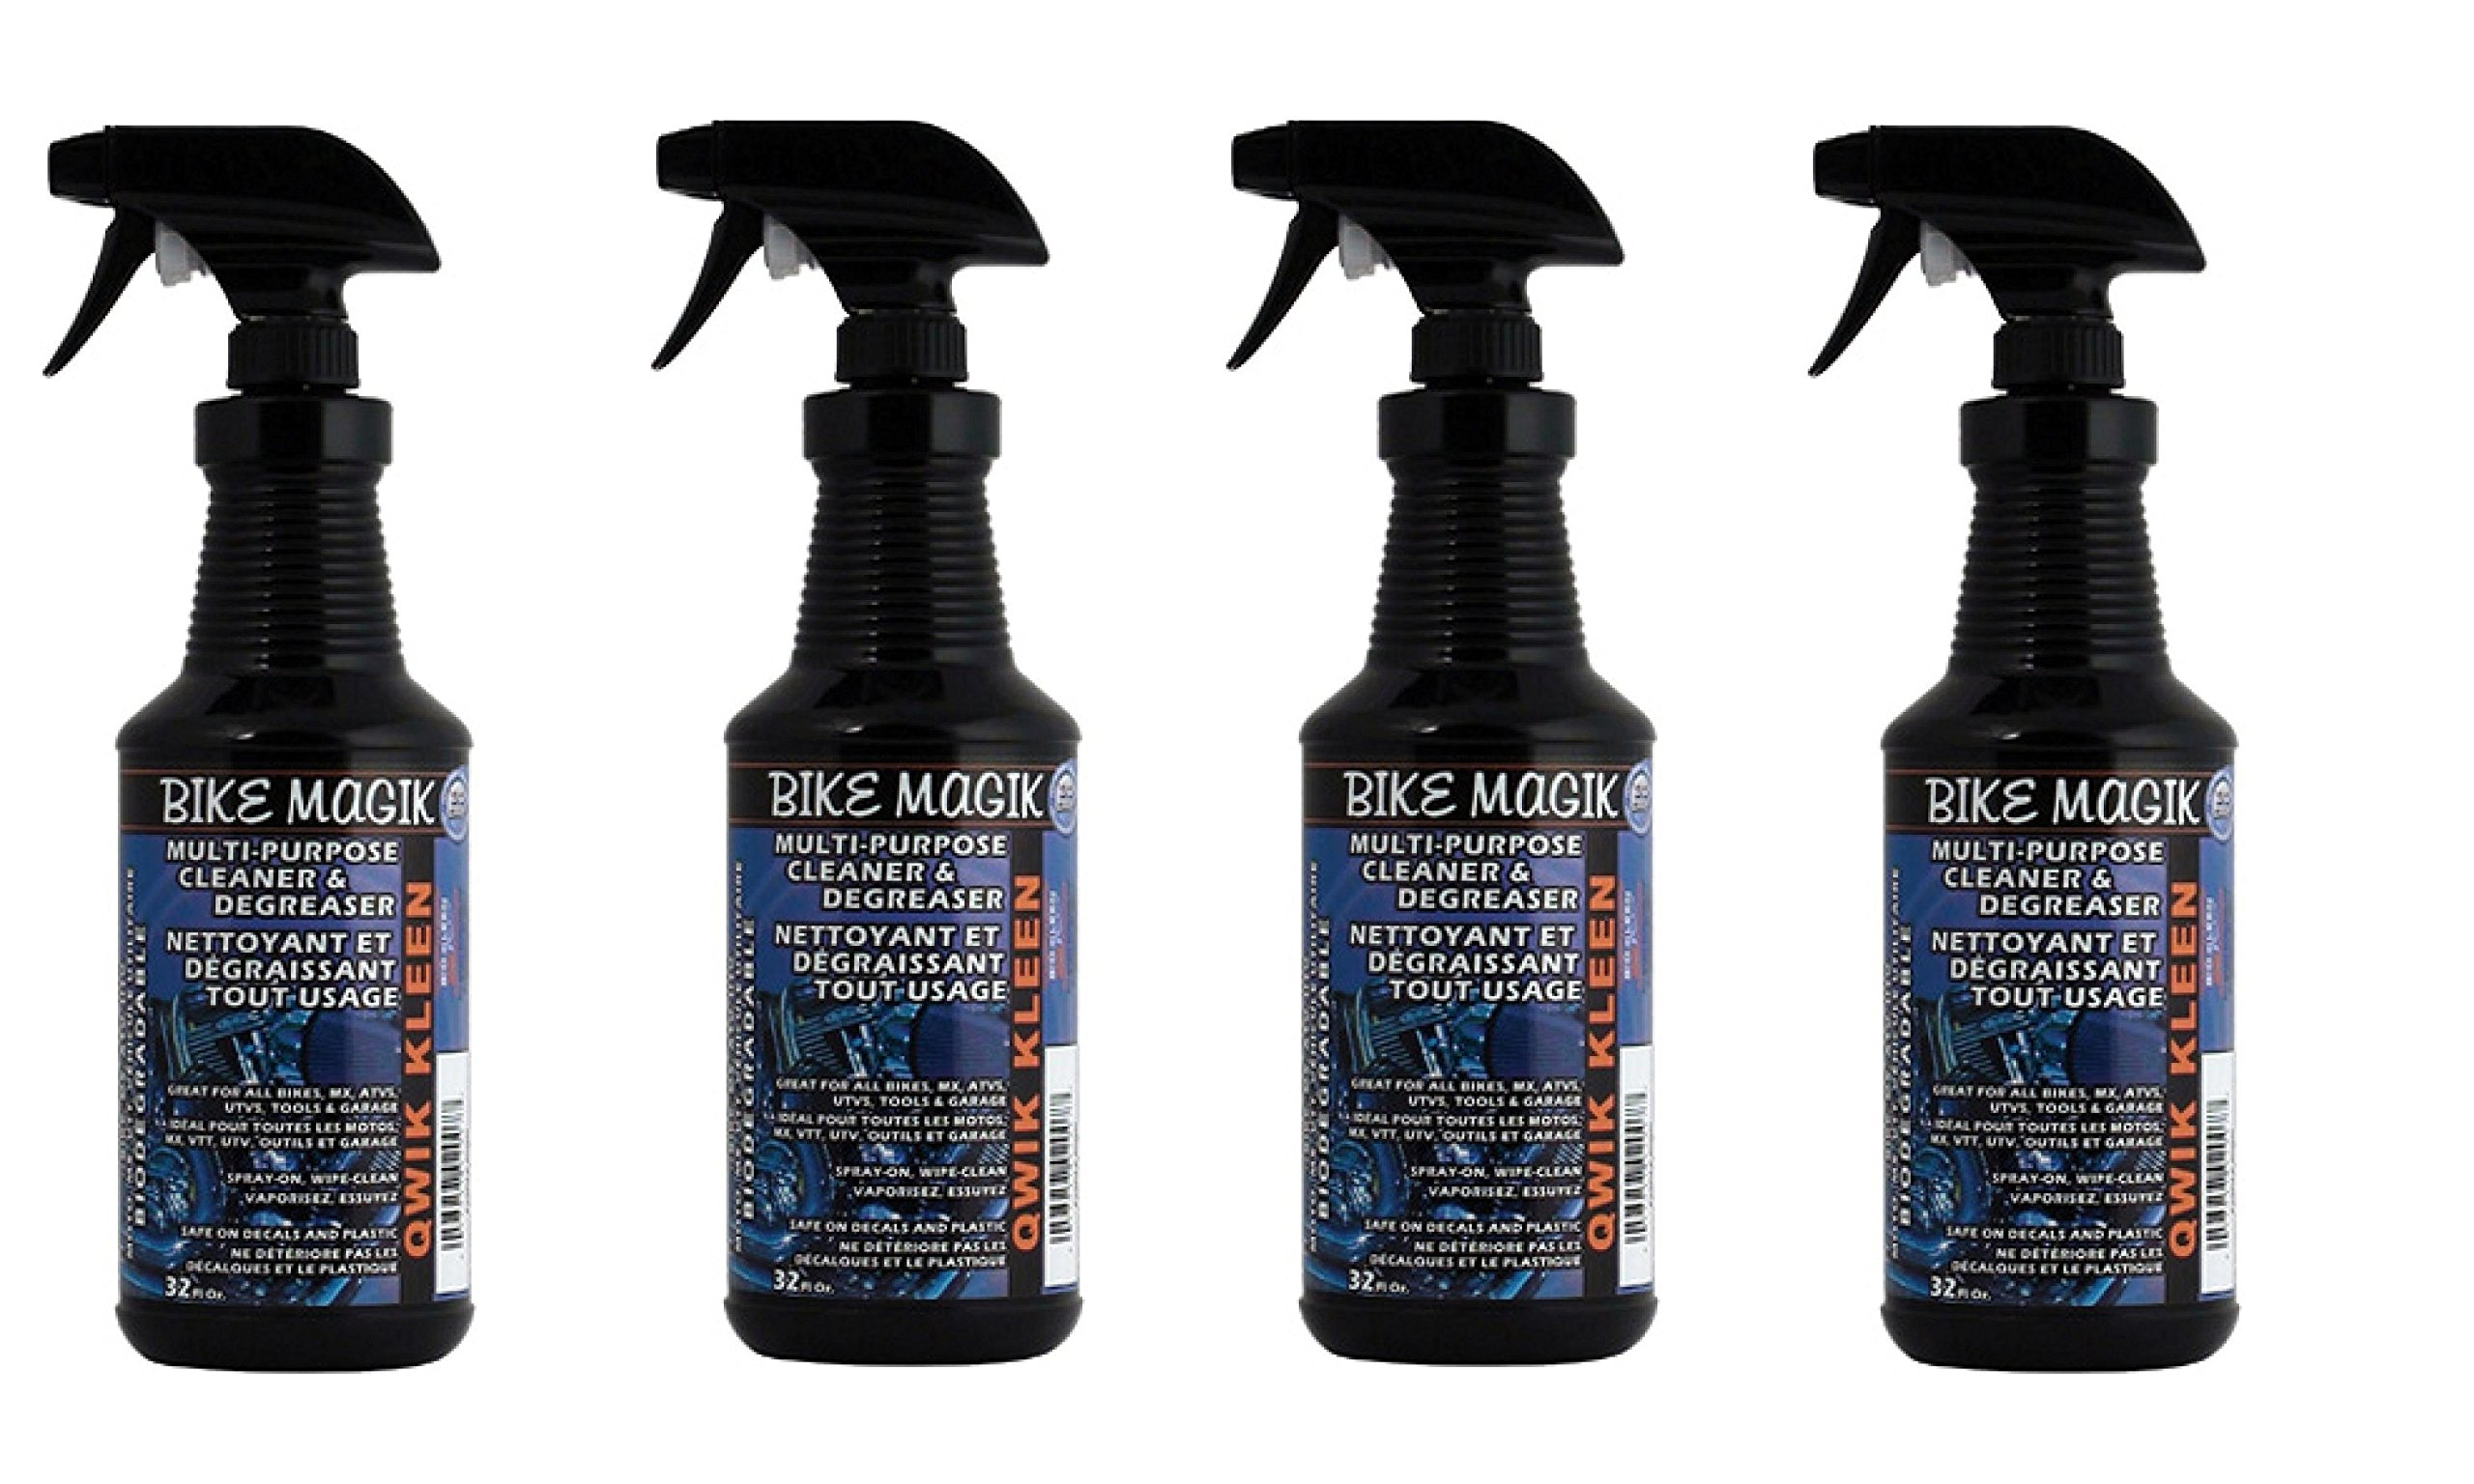 Bio-Kleen B02007 Bike Magik Degreaser 32 Oz. (4)